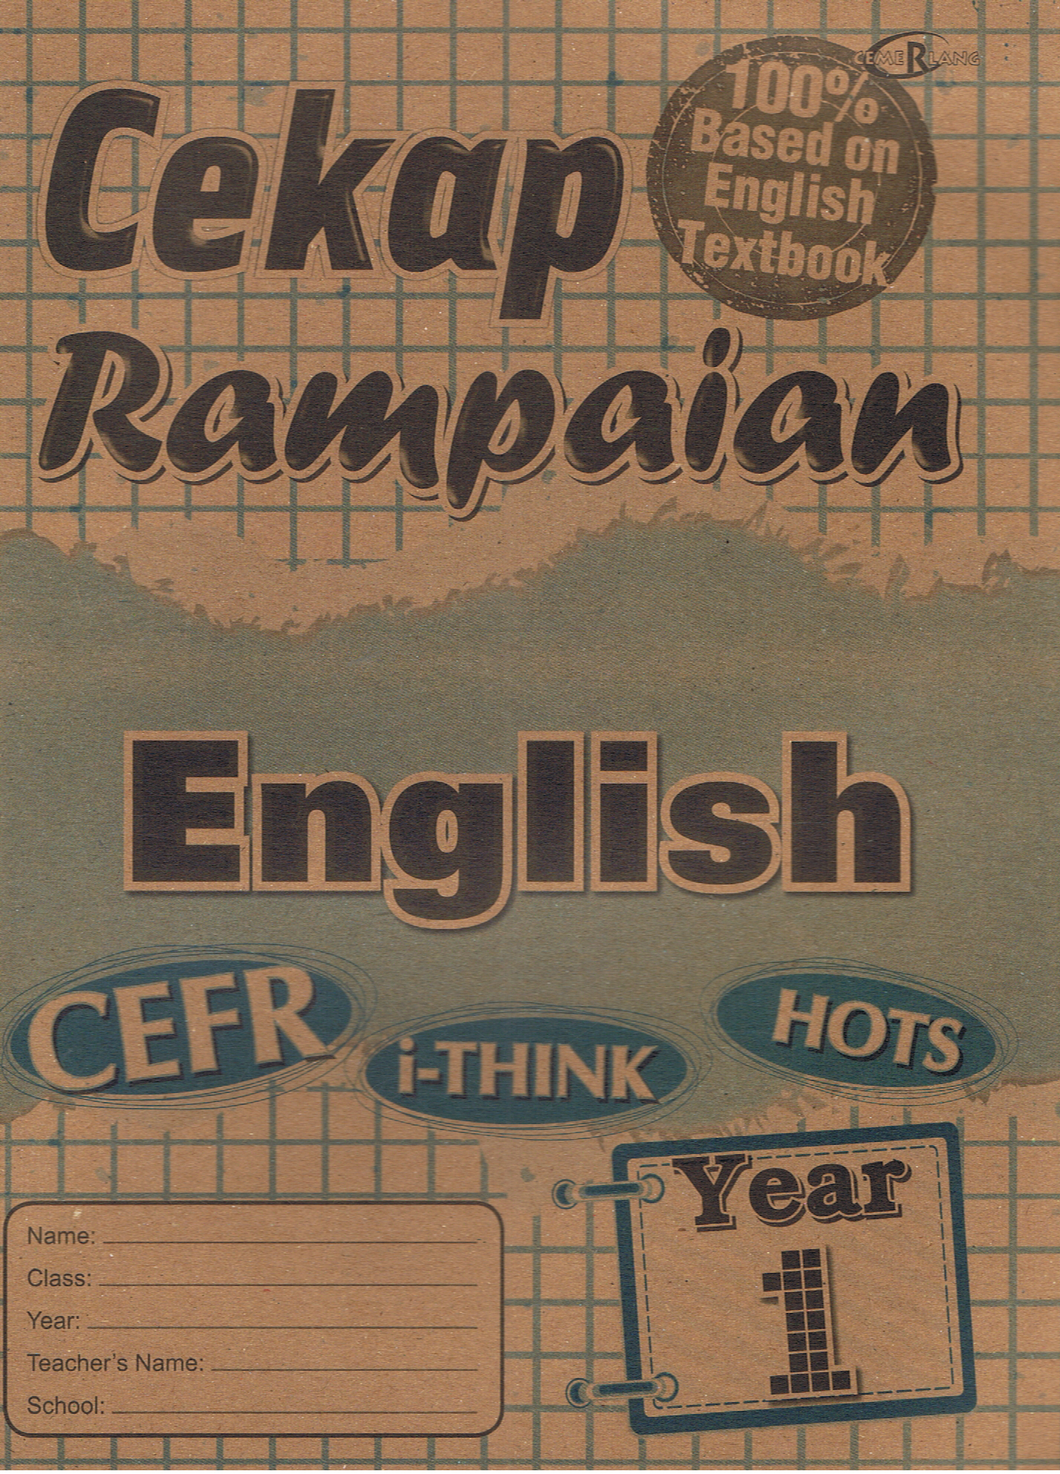 Cekap Rampaian: English Year 1